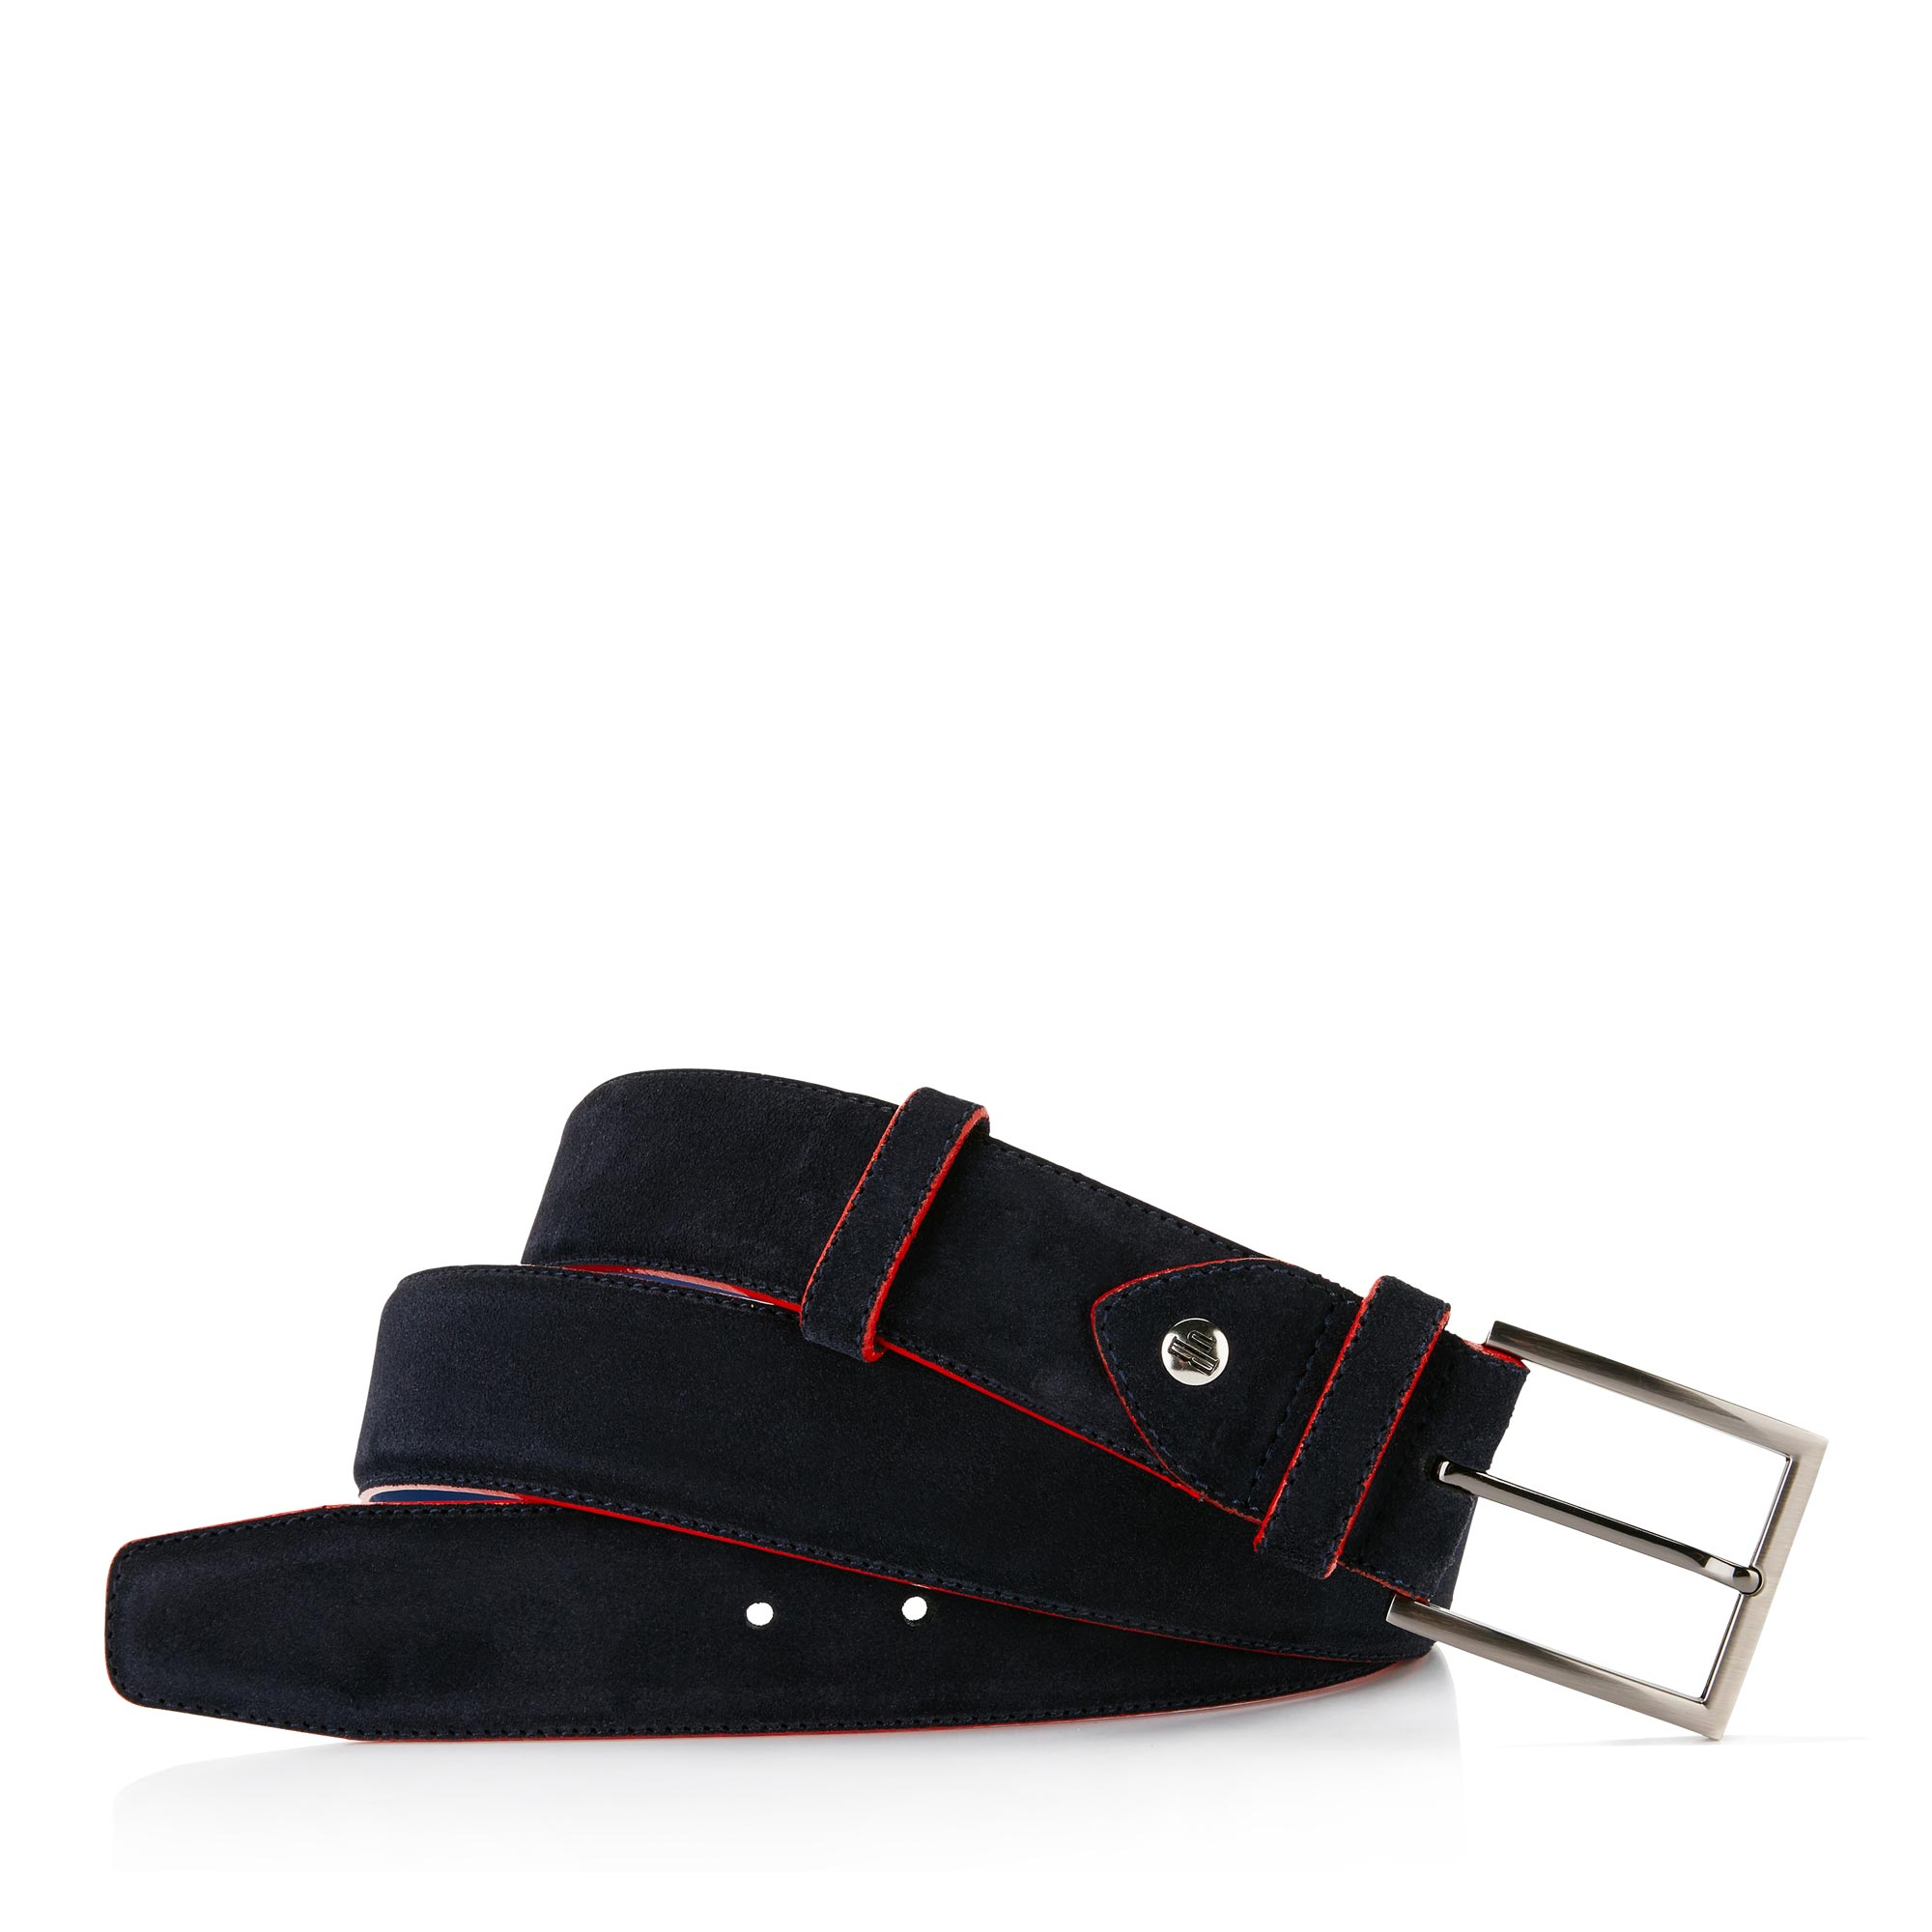 75037/09 - Floris van Bommel dark blue suede men's belt